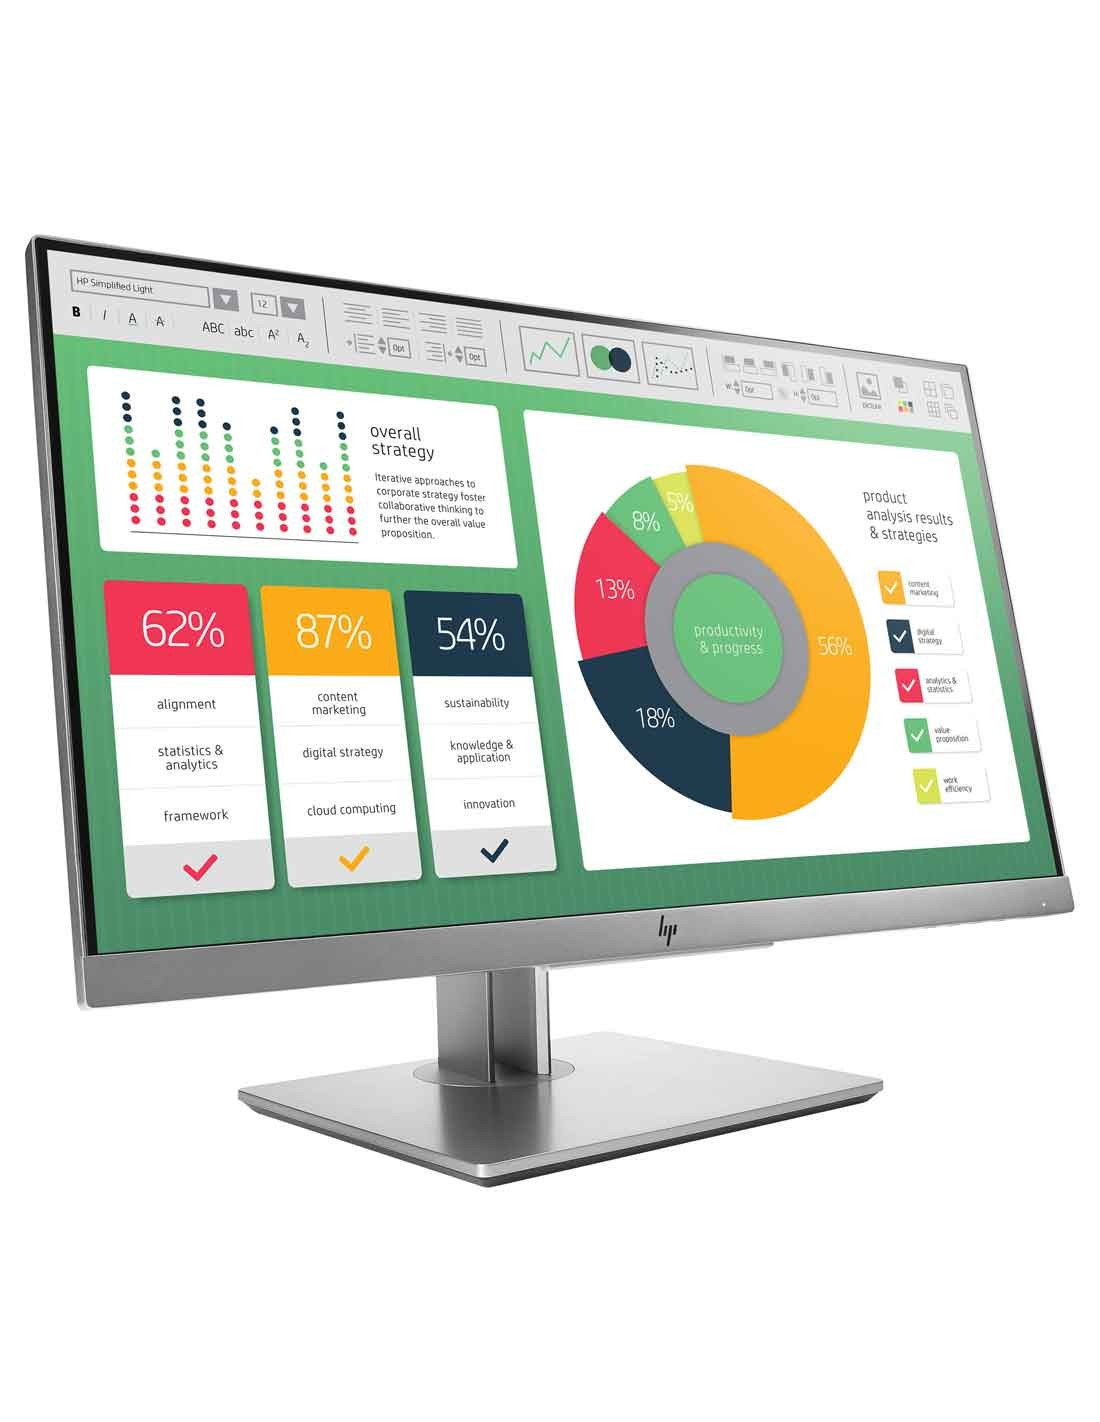 HP EliteDisplay E223 21.5-inch Monitor at the cheapest price and fast free delivery in Dubai